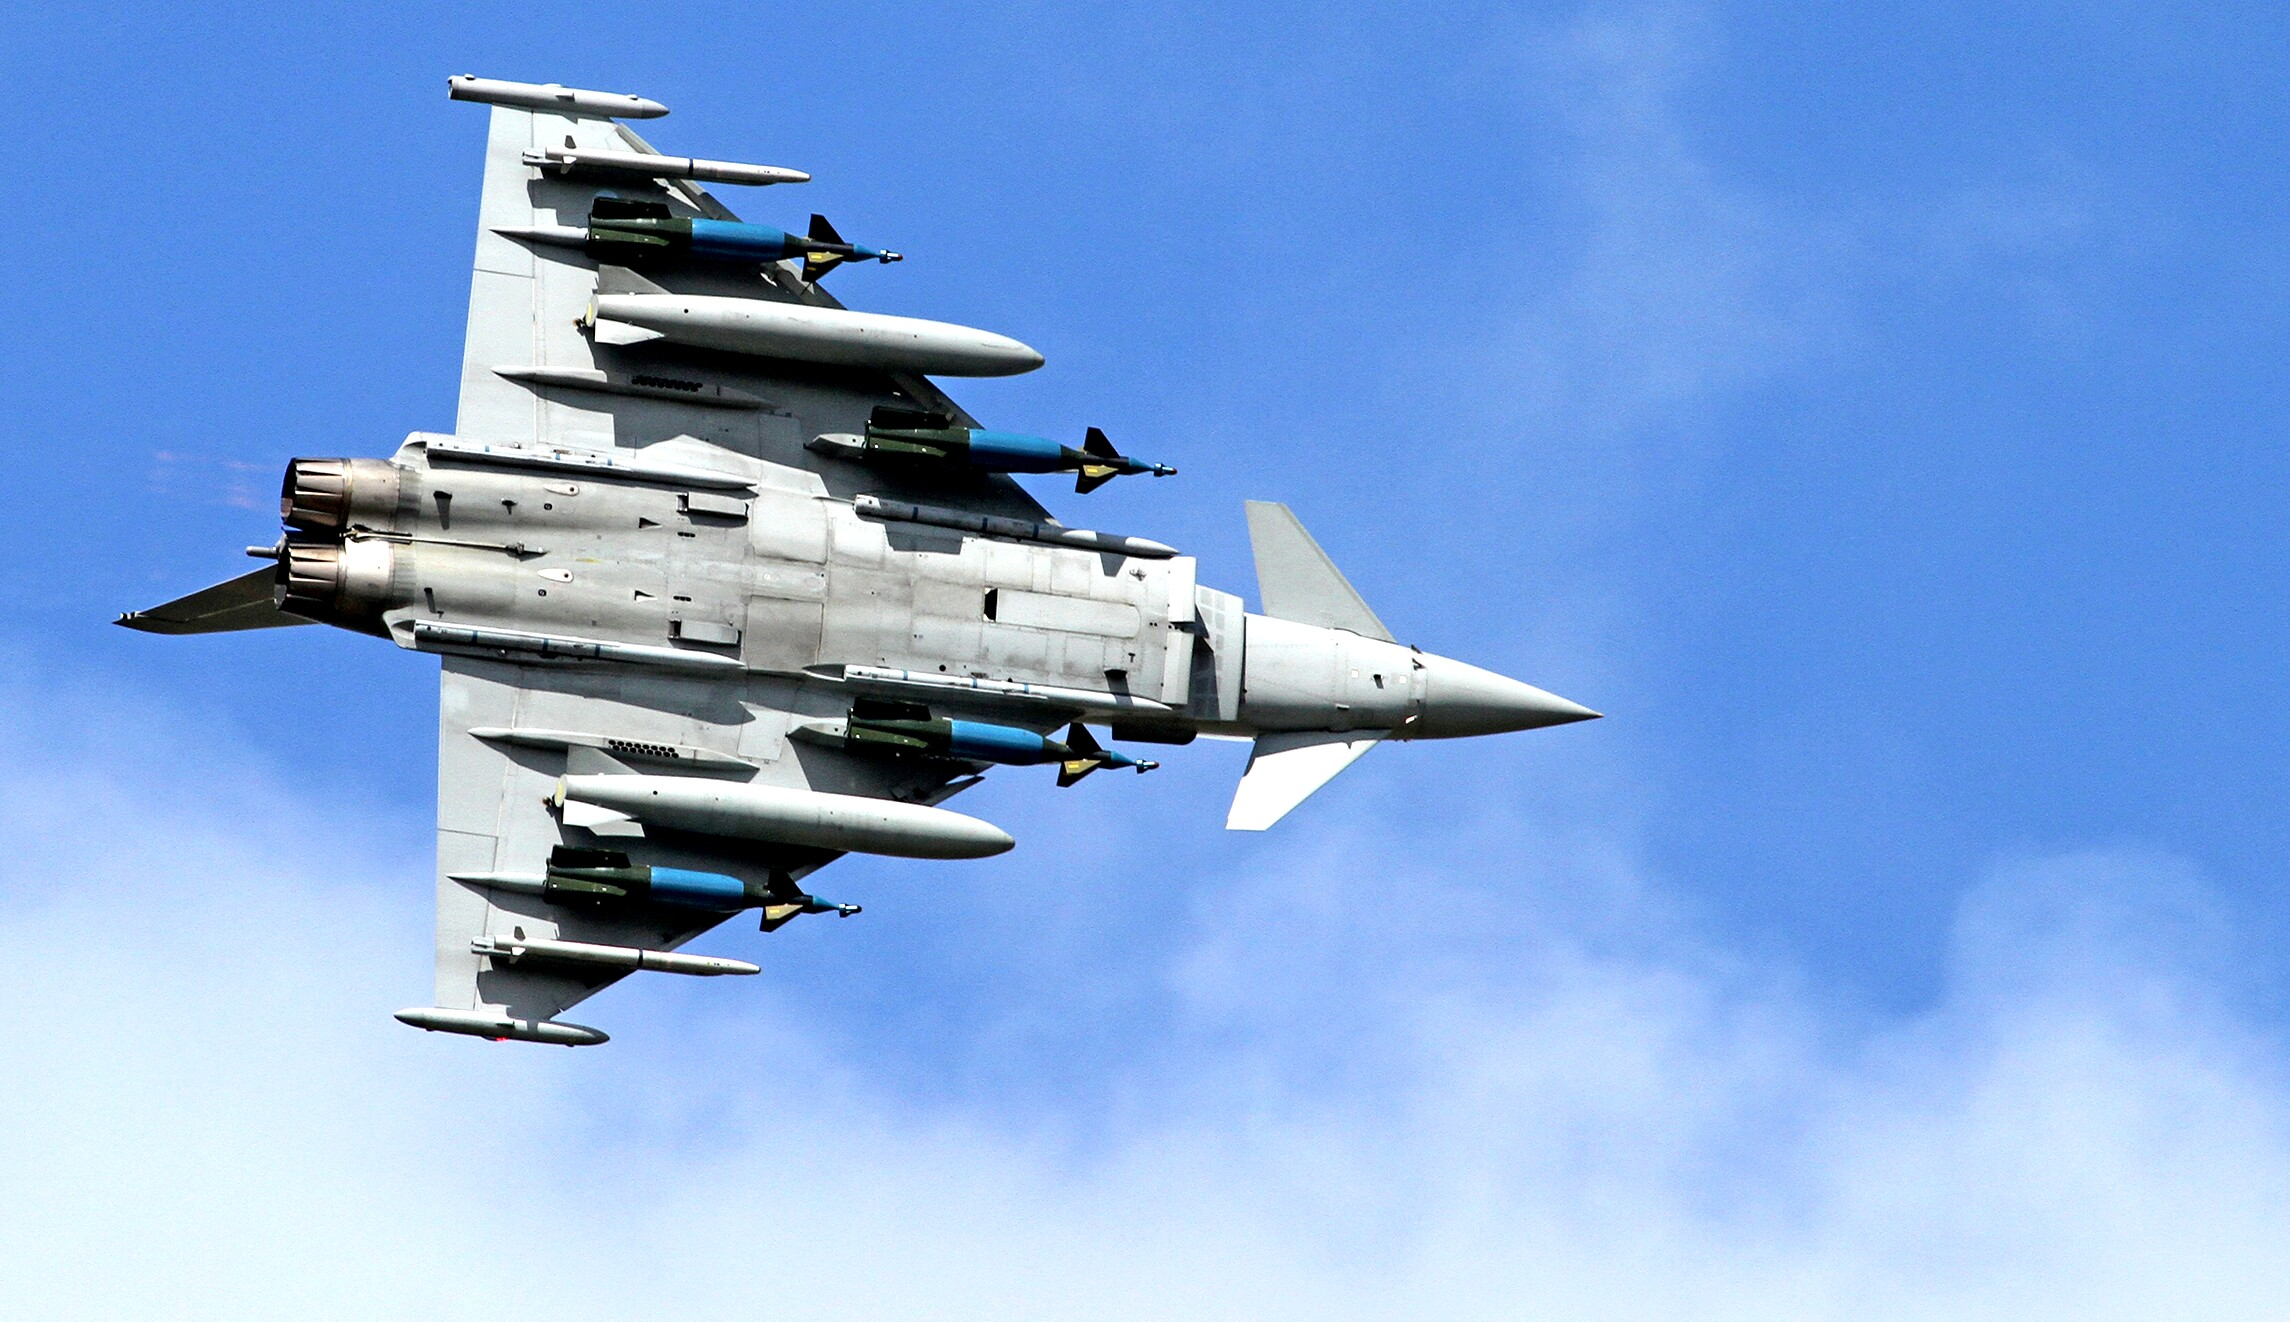 The very political reason Qatar buys different fighter